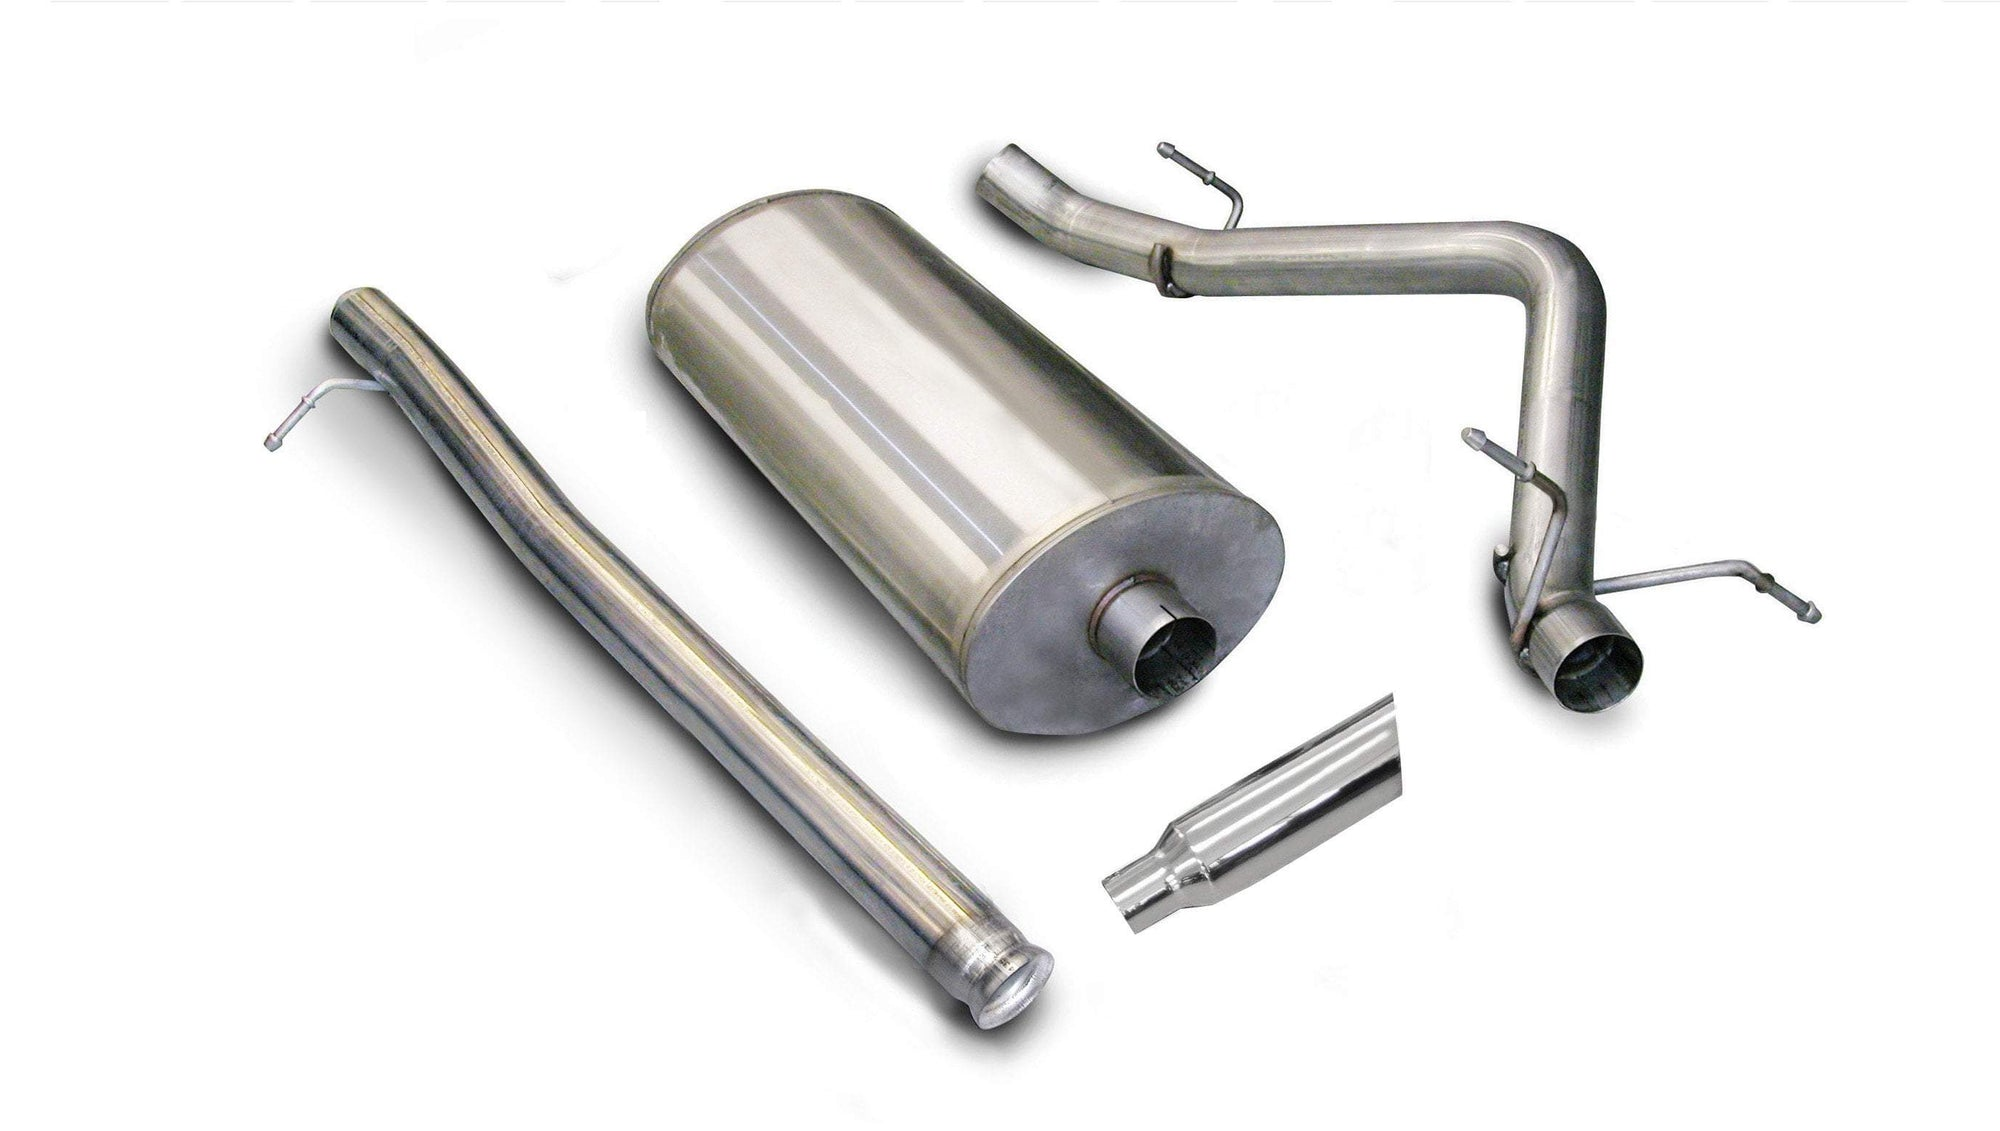 "dB Cat-Back Exhaust Polished / Sport / Single Side - Single 4in 2007-2008 Silverado, Sierra, 4.8L, 5.3L 6.0L V8 3.0"" Single Side Exit Catback Exhaust System with 4.0"" Tip (24259) Sport Sound Level"